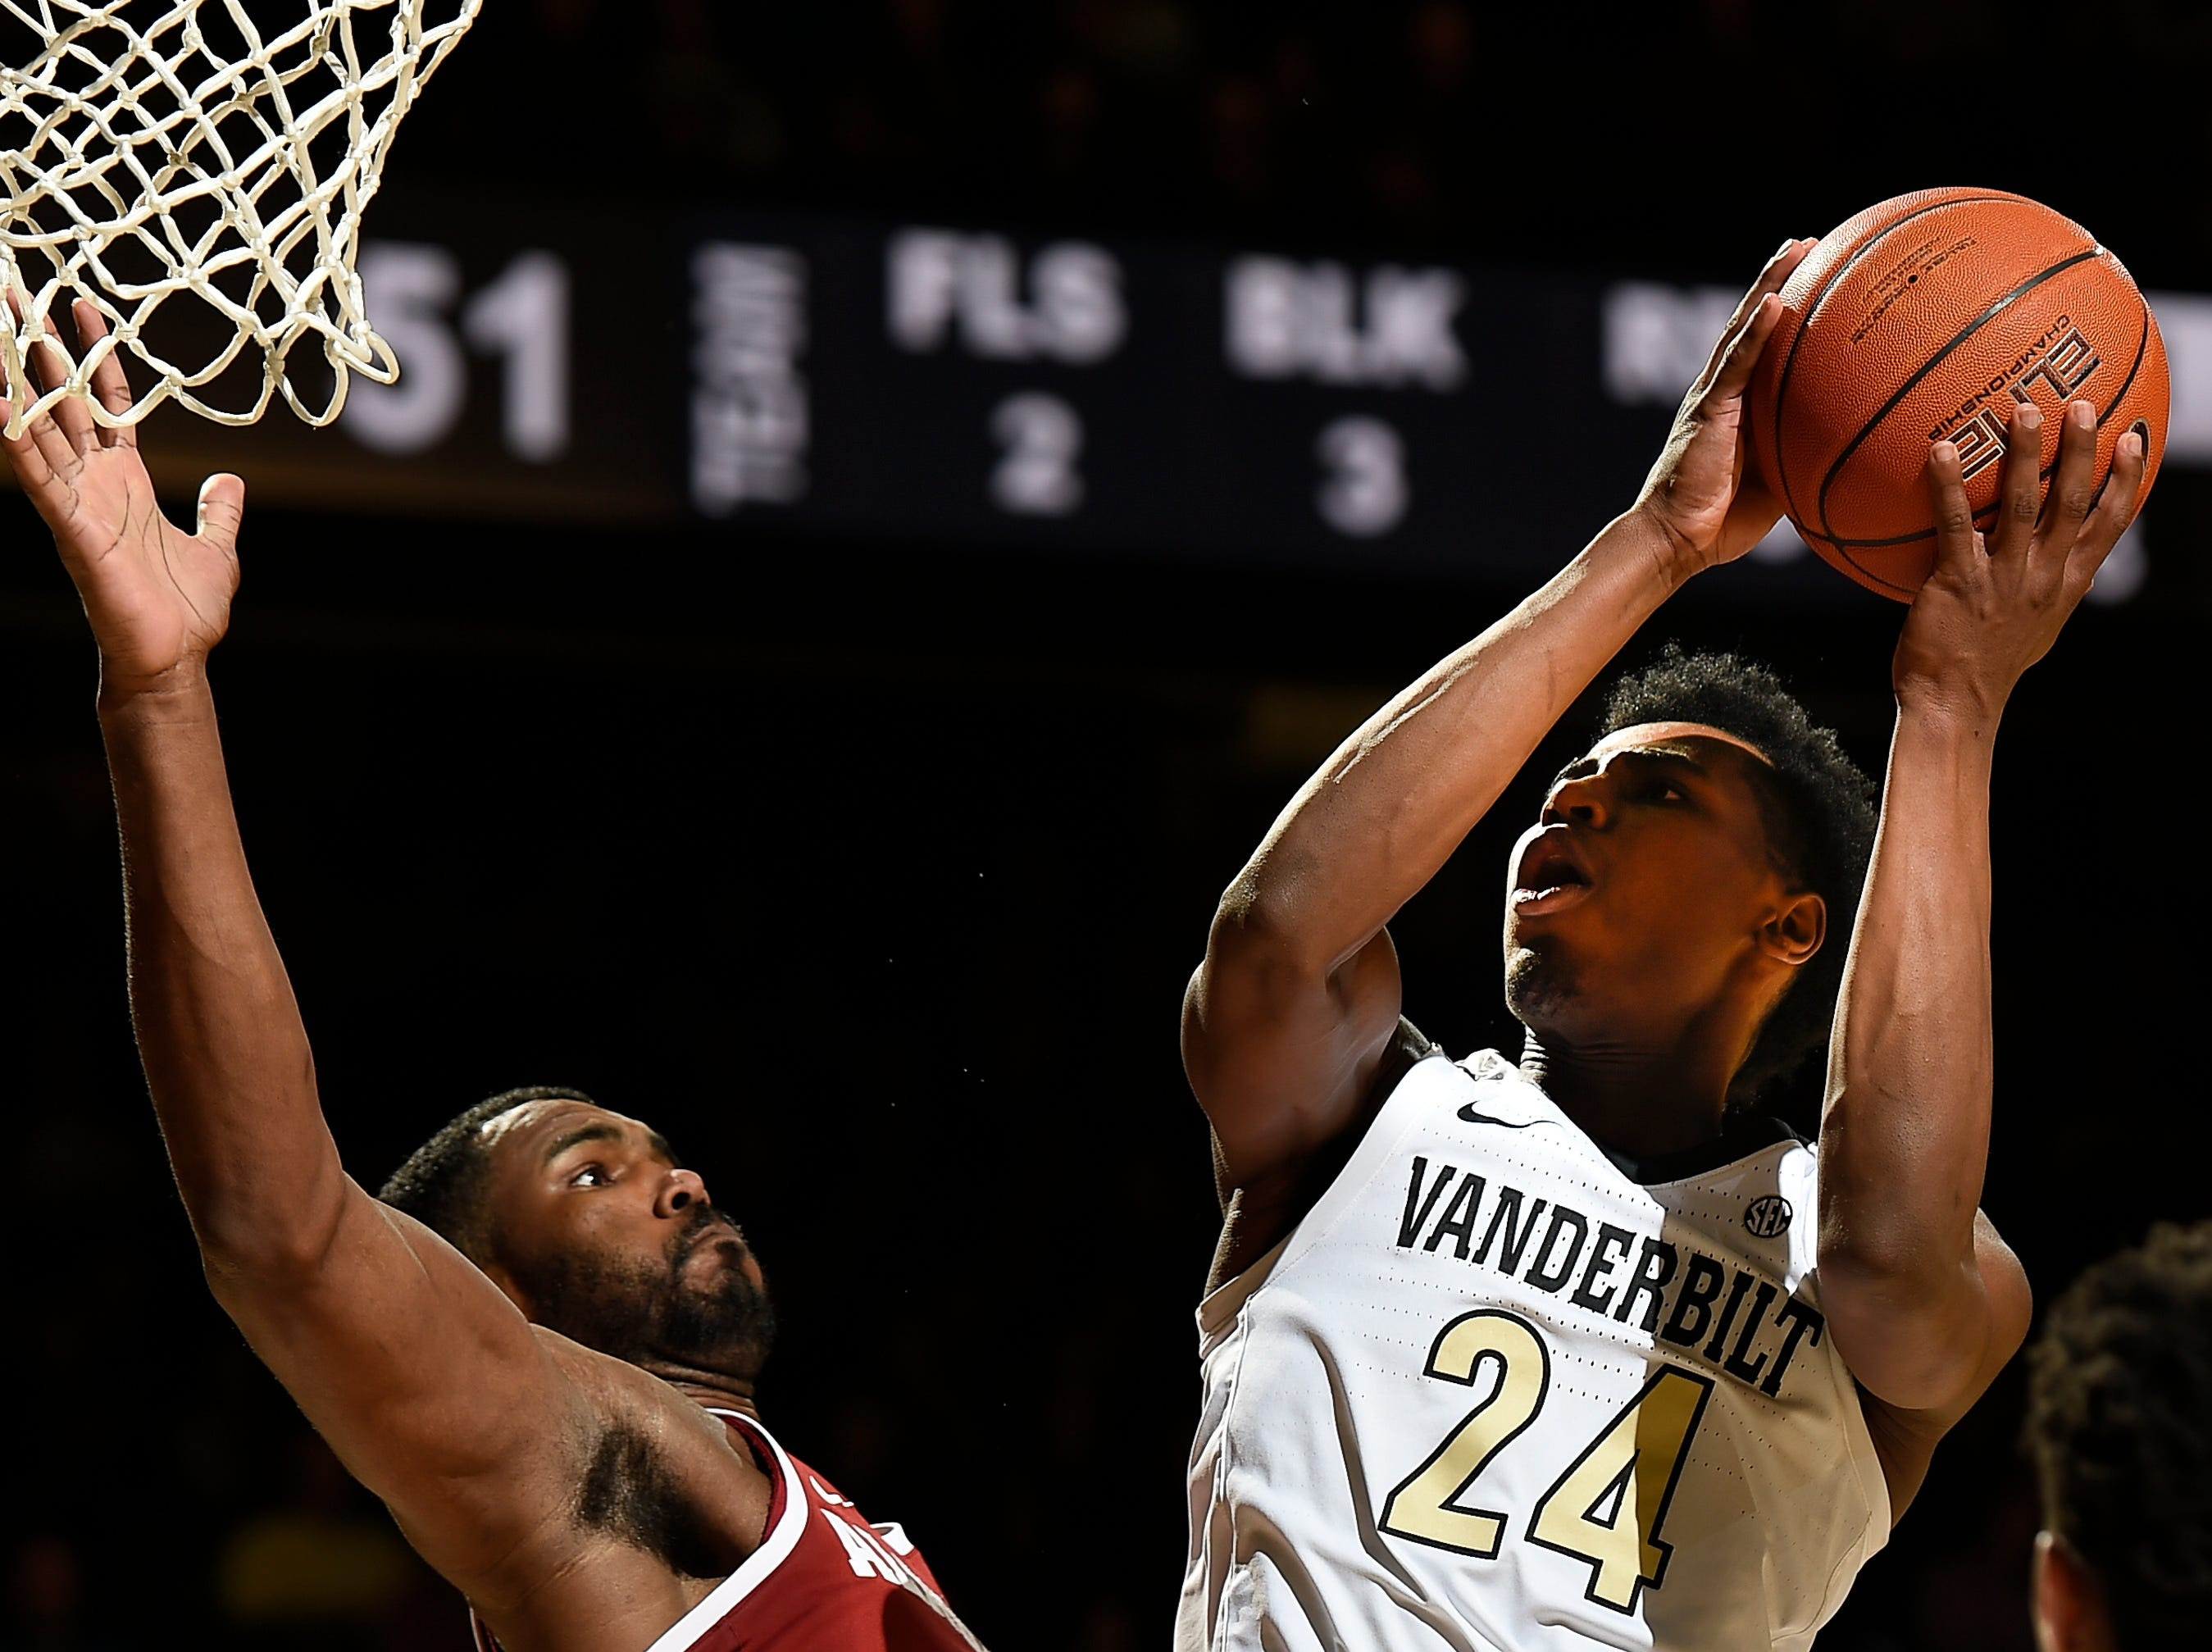 Vanderbilt forward Aaron Nesmith (24) shoots over Alabama forward Daniel Giddens (4) during the second half at Memorial Gym Saturday Feb. 9, 2019 in Nashville, Tenn.